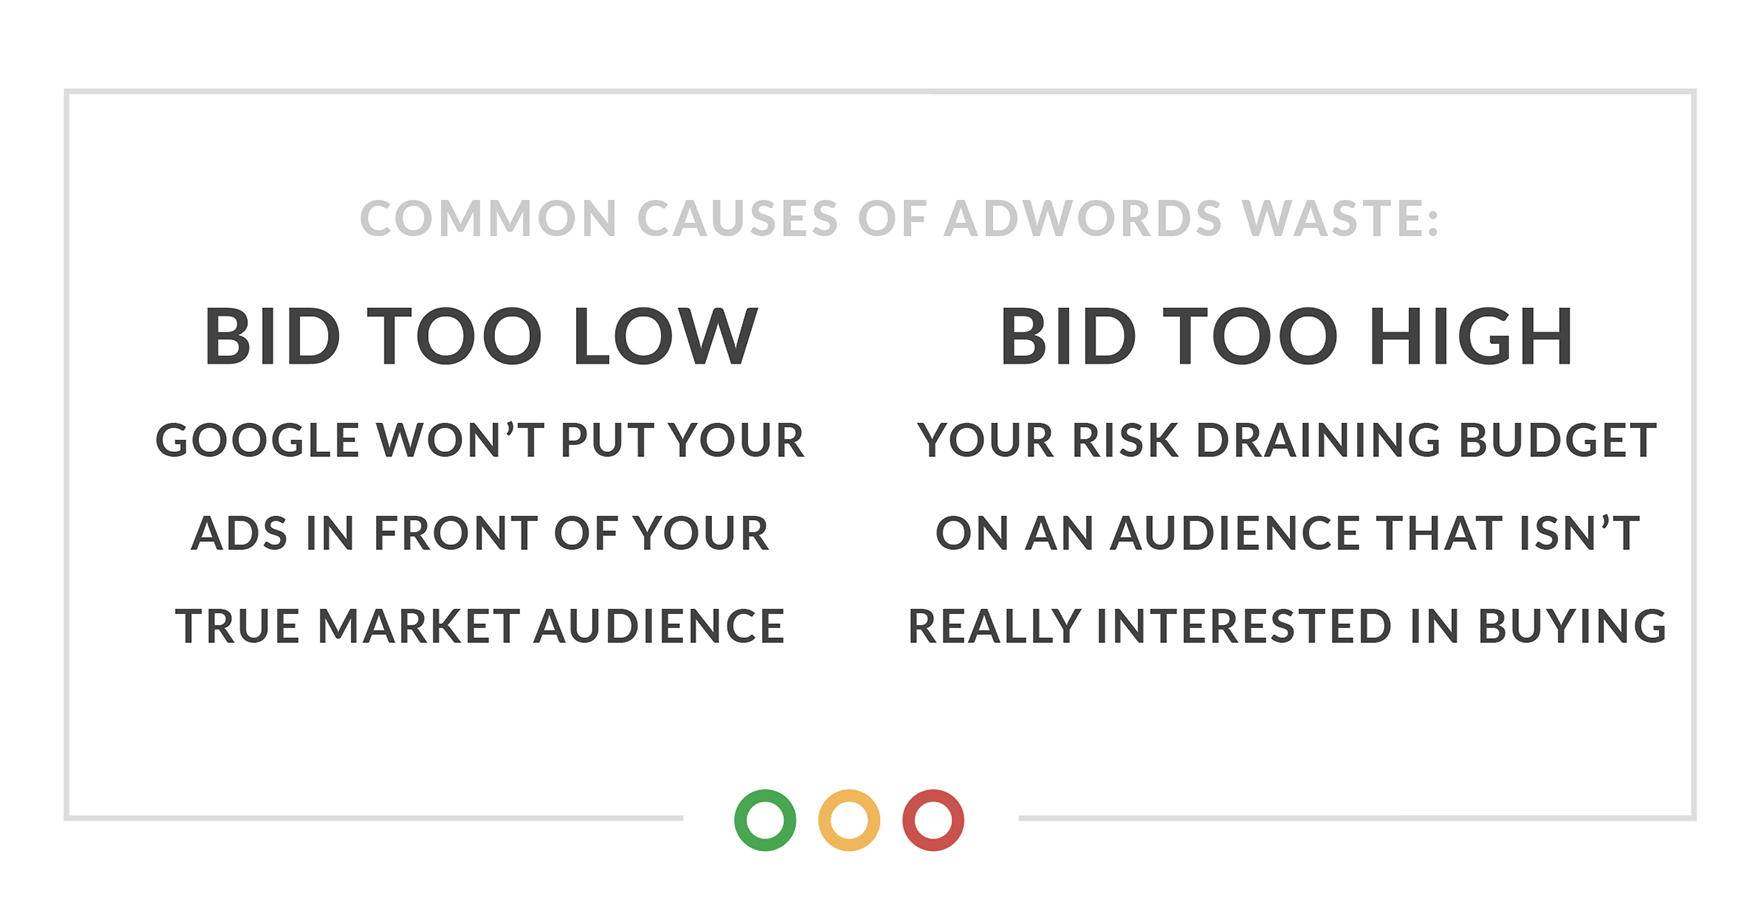 clickscore_adwords-bidding-strategies-adwords-waste